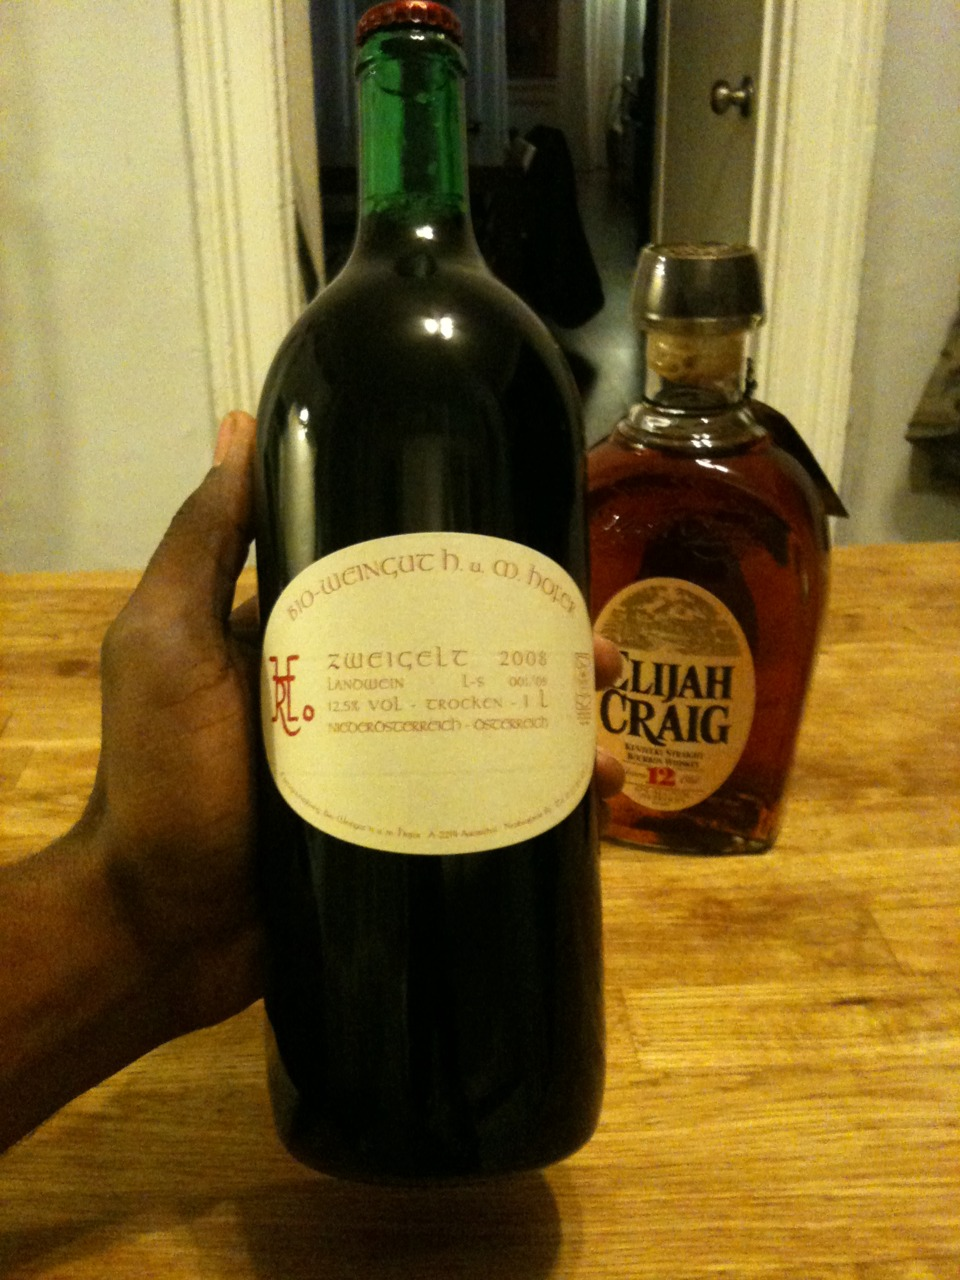 Definitely my favorite wine. (trying a new bourbon for the lightweight, Marcia)